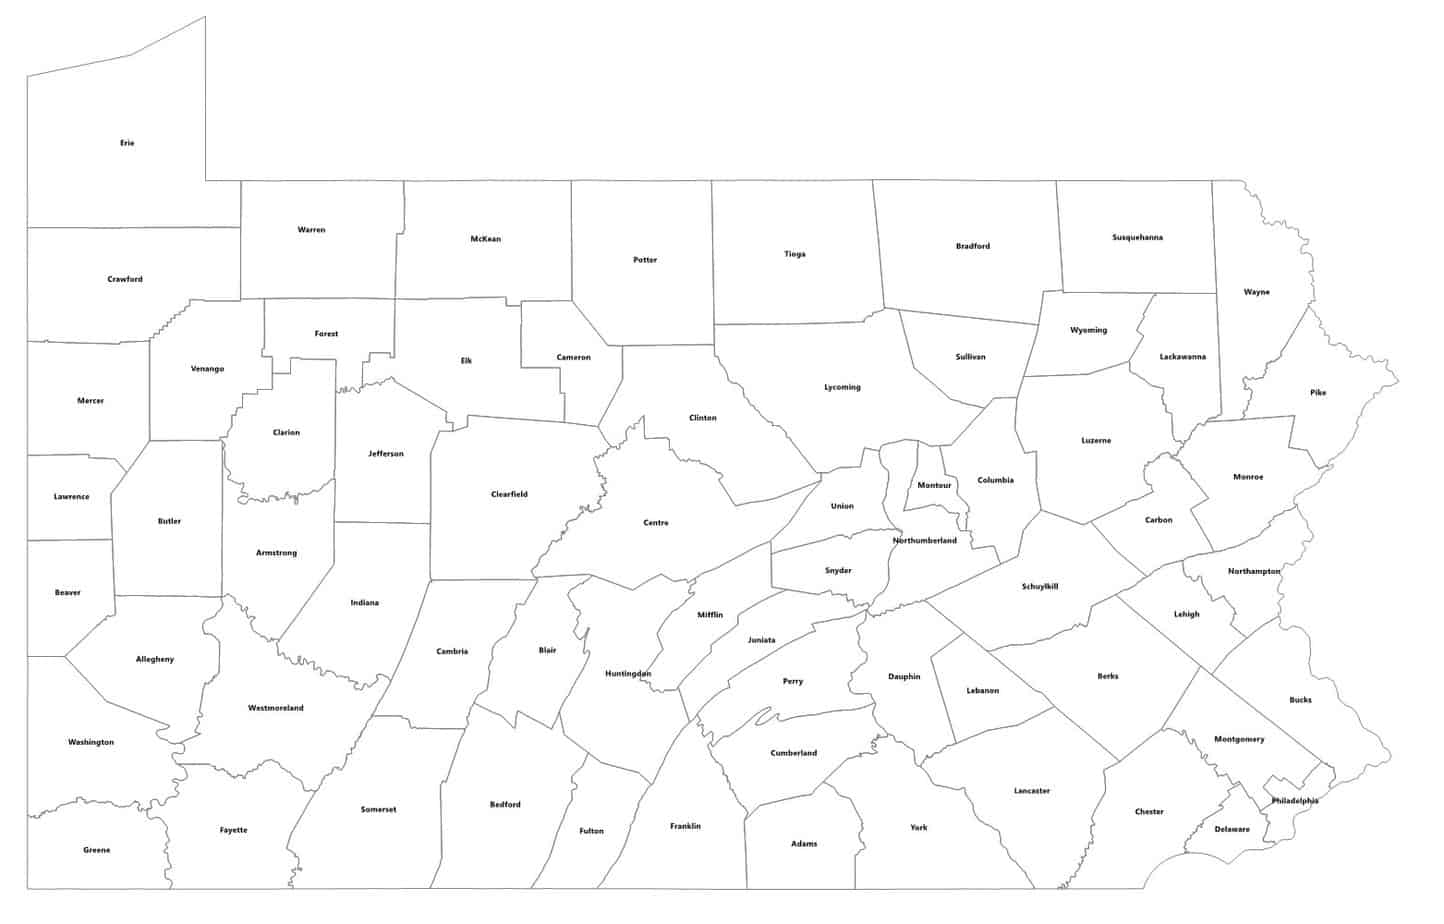 county outline map of Pennsylvania with hot spots for regional centers